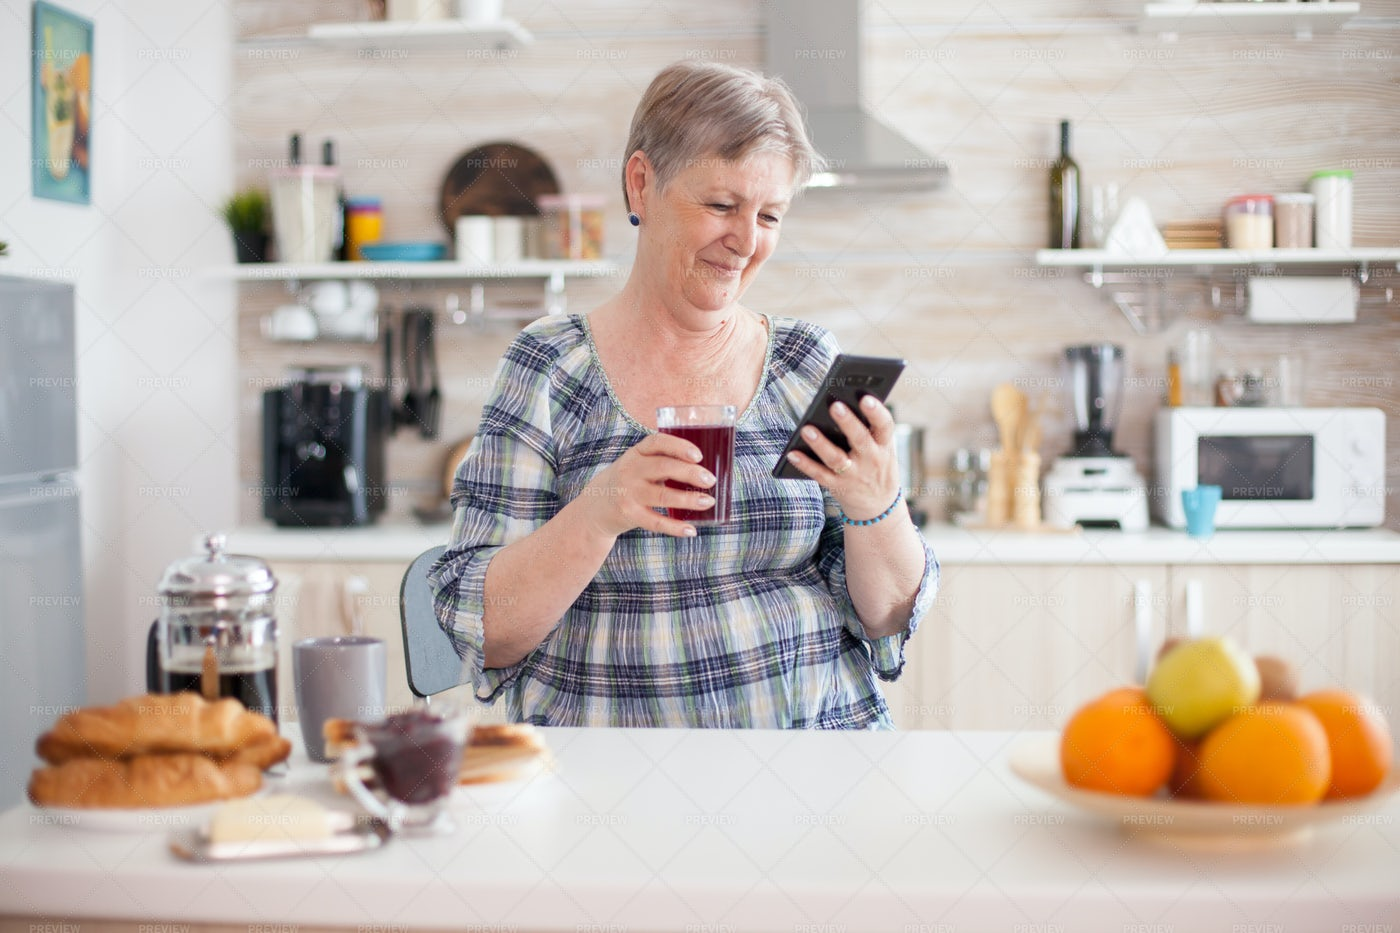 Smiling Older Woman Using Smartphone: Stock Photos